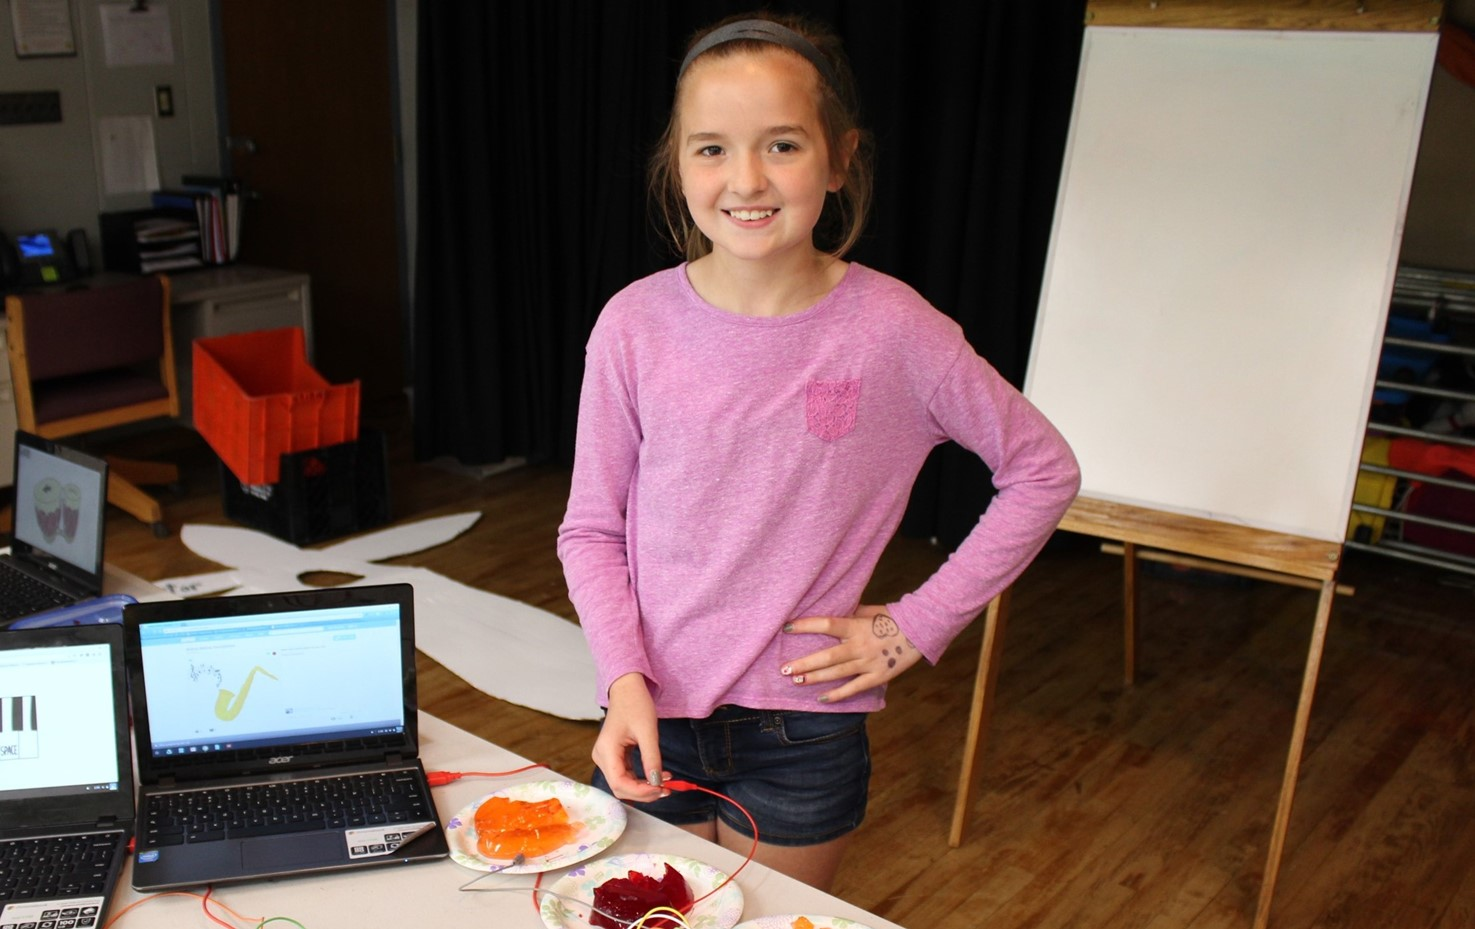 Washington Fourth Graders Use Makey-Makeys To Make Musical Instruments